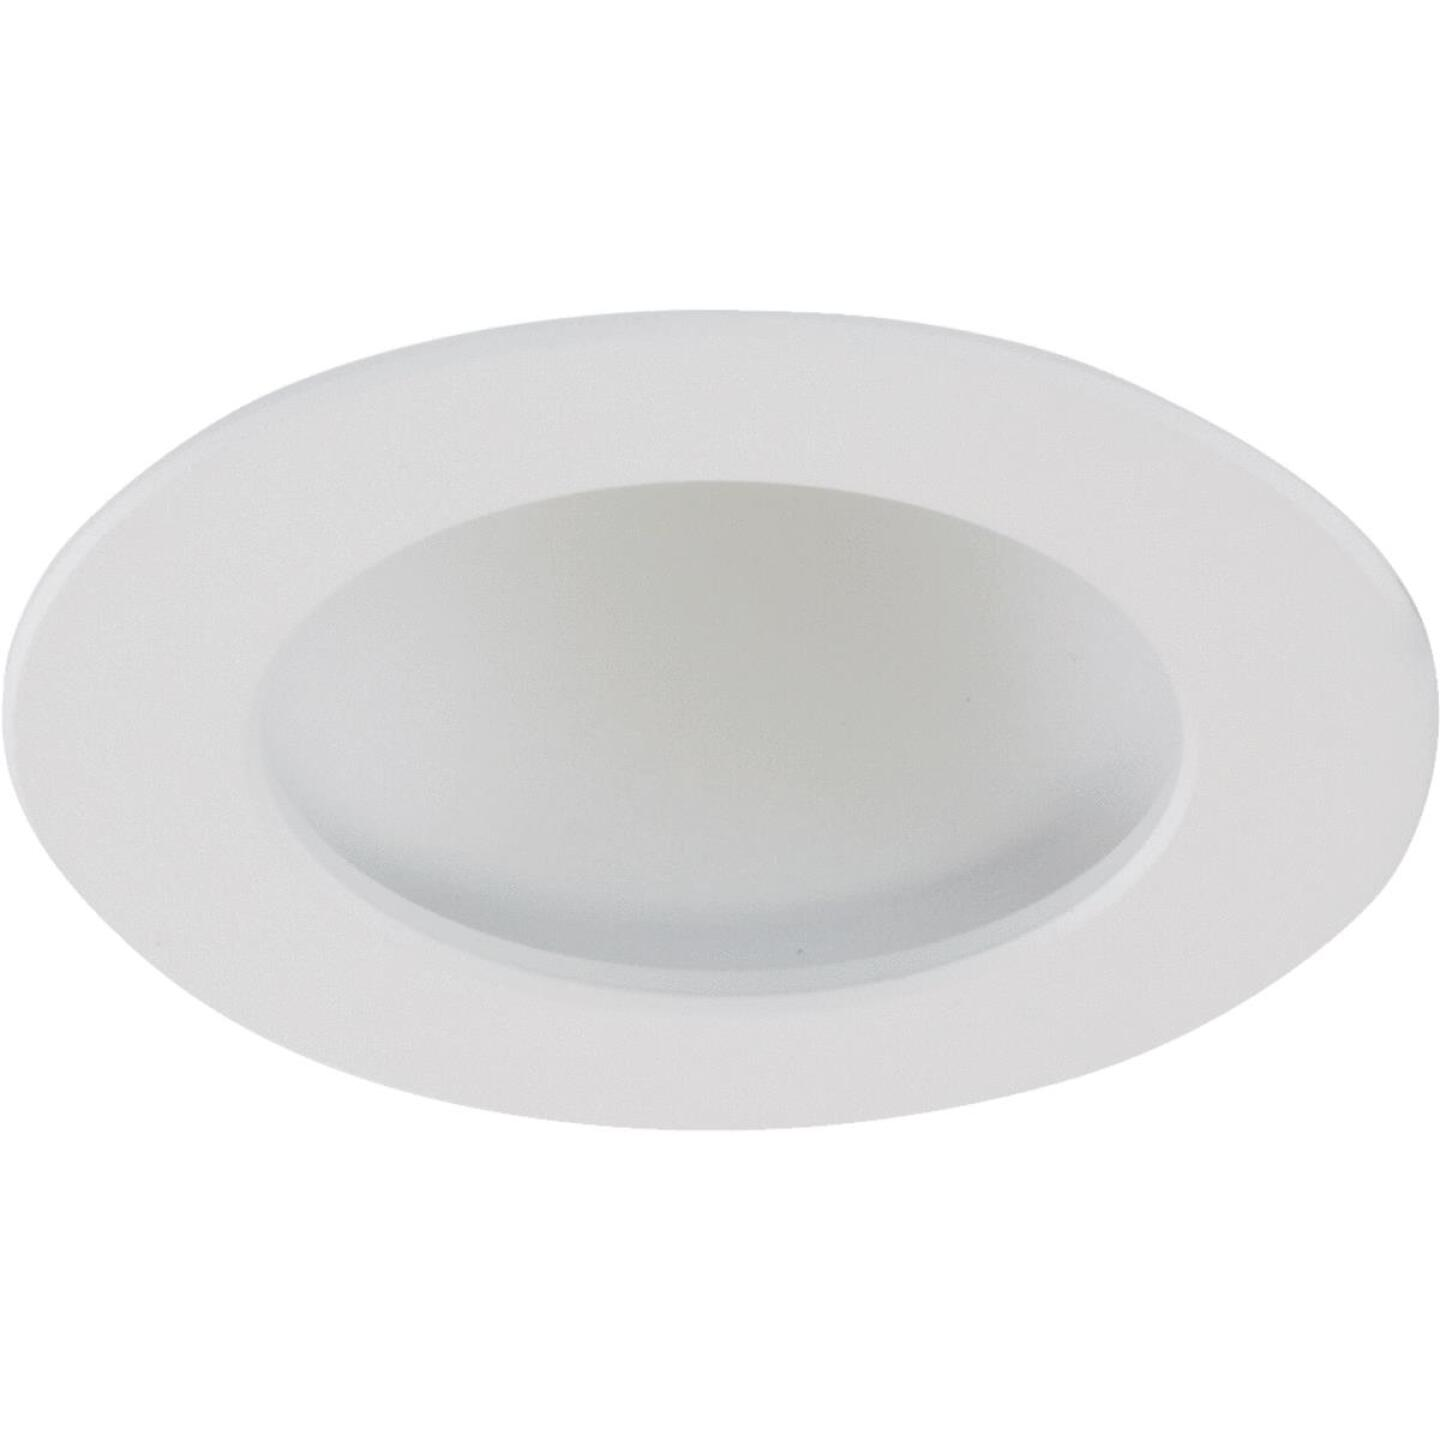 Liteline Trenz ThinLED 4 In. New Construction/Remodel IC White 500 Lm. Sunset Dimming Recessed Light Kit Image 1